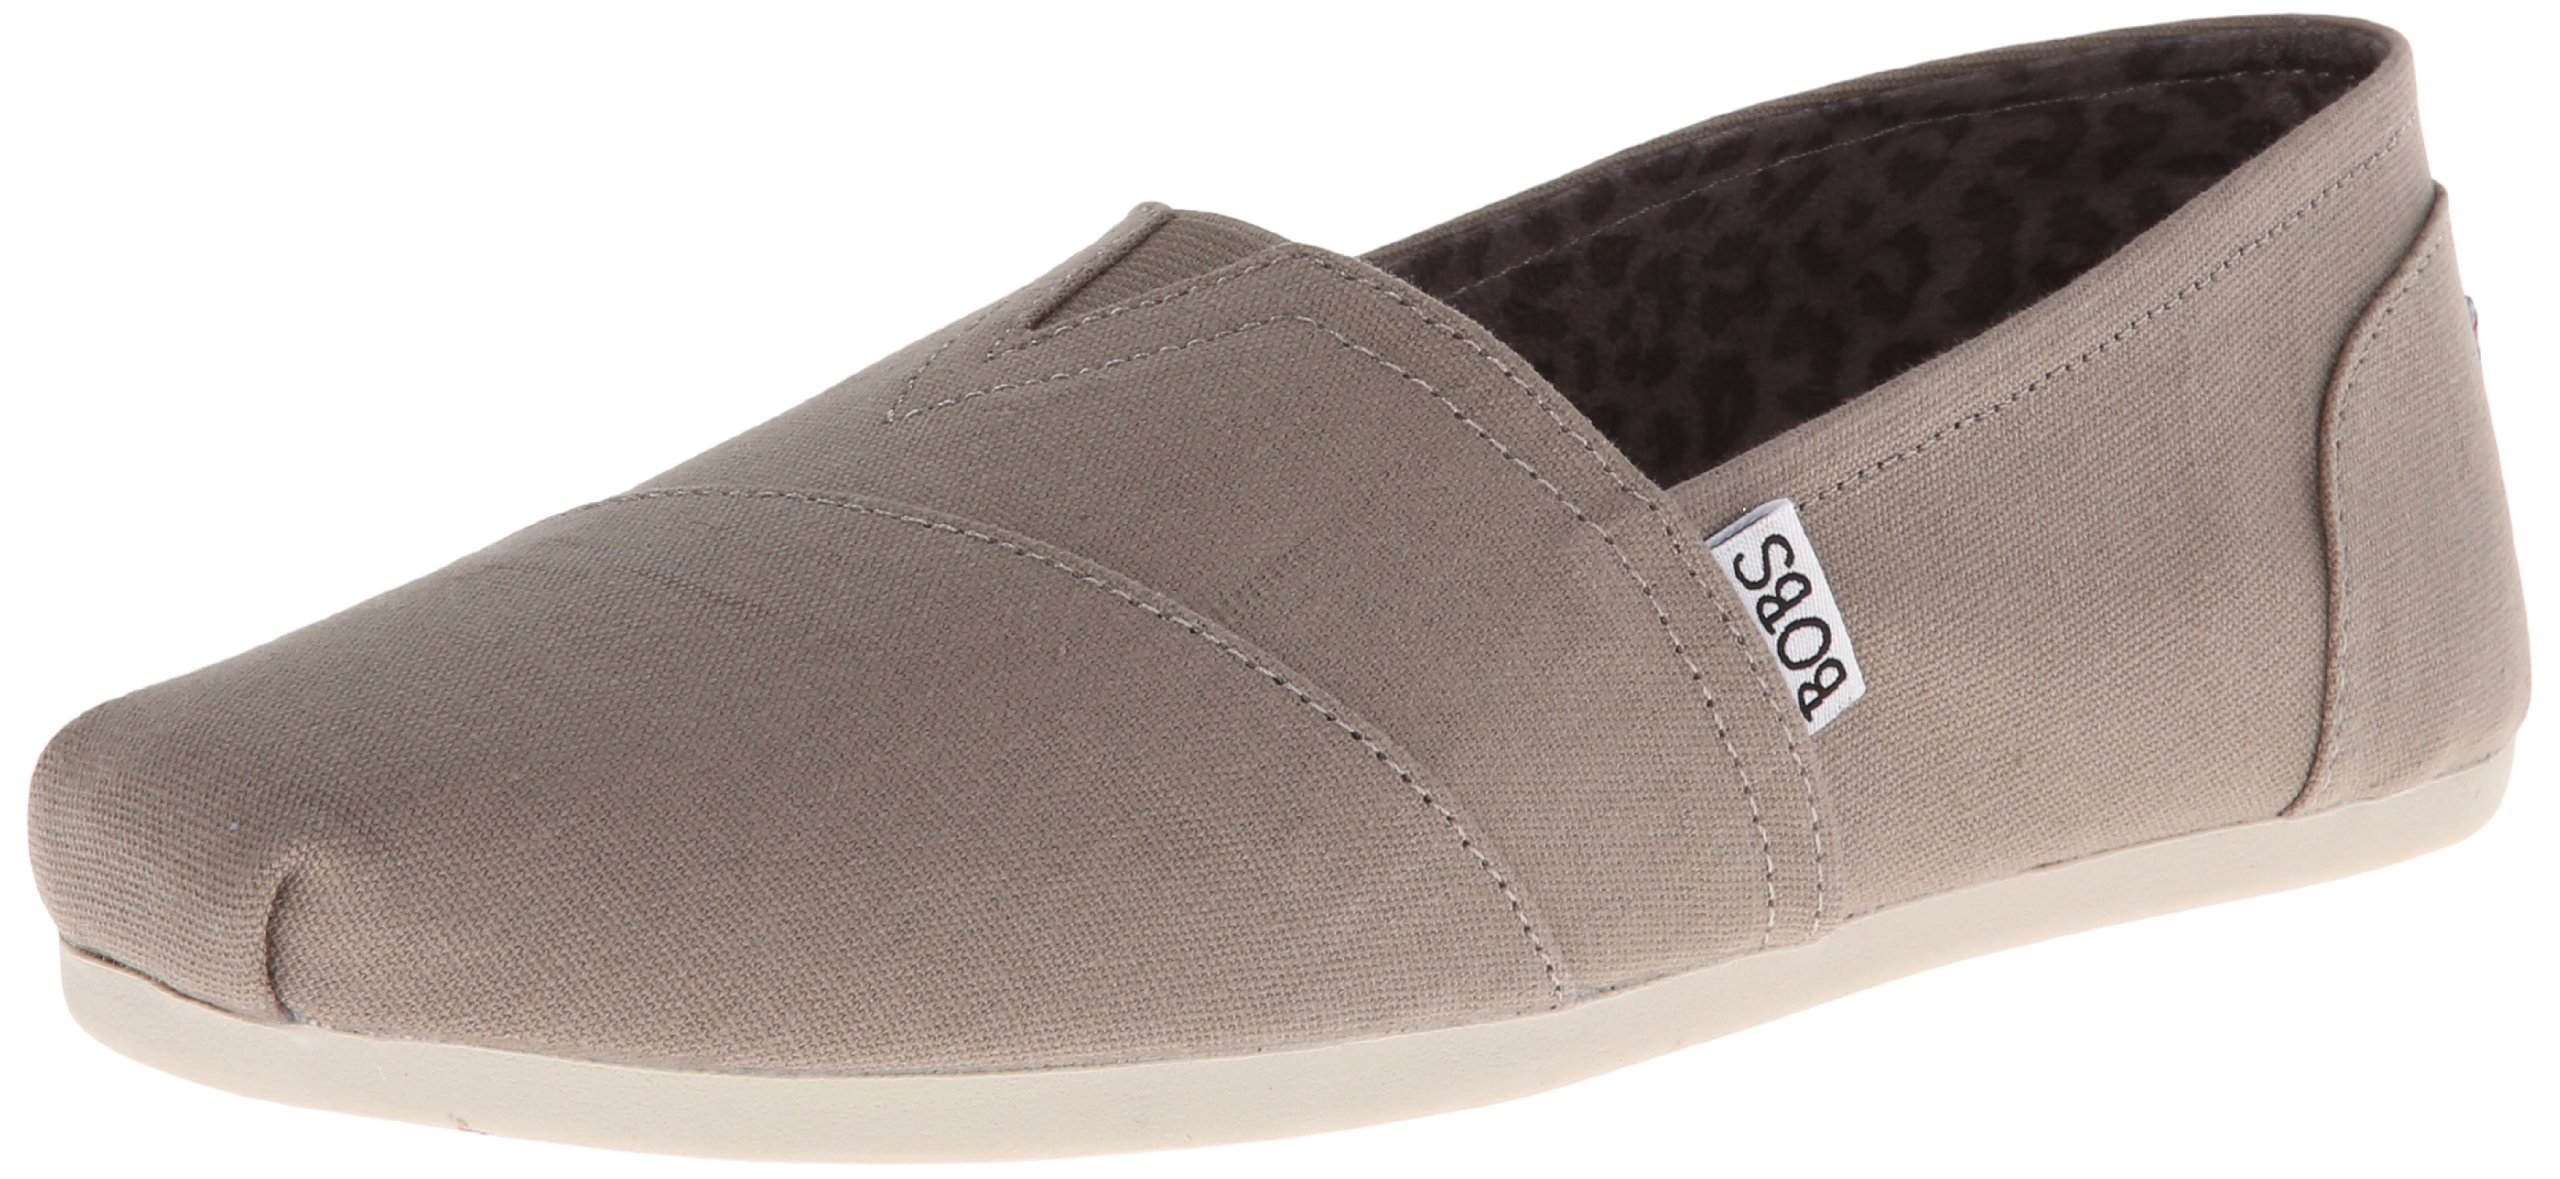 Skechers BOBS from Women's Plush Peace and Love Flat,Taupe,5 M US